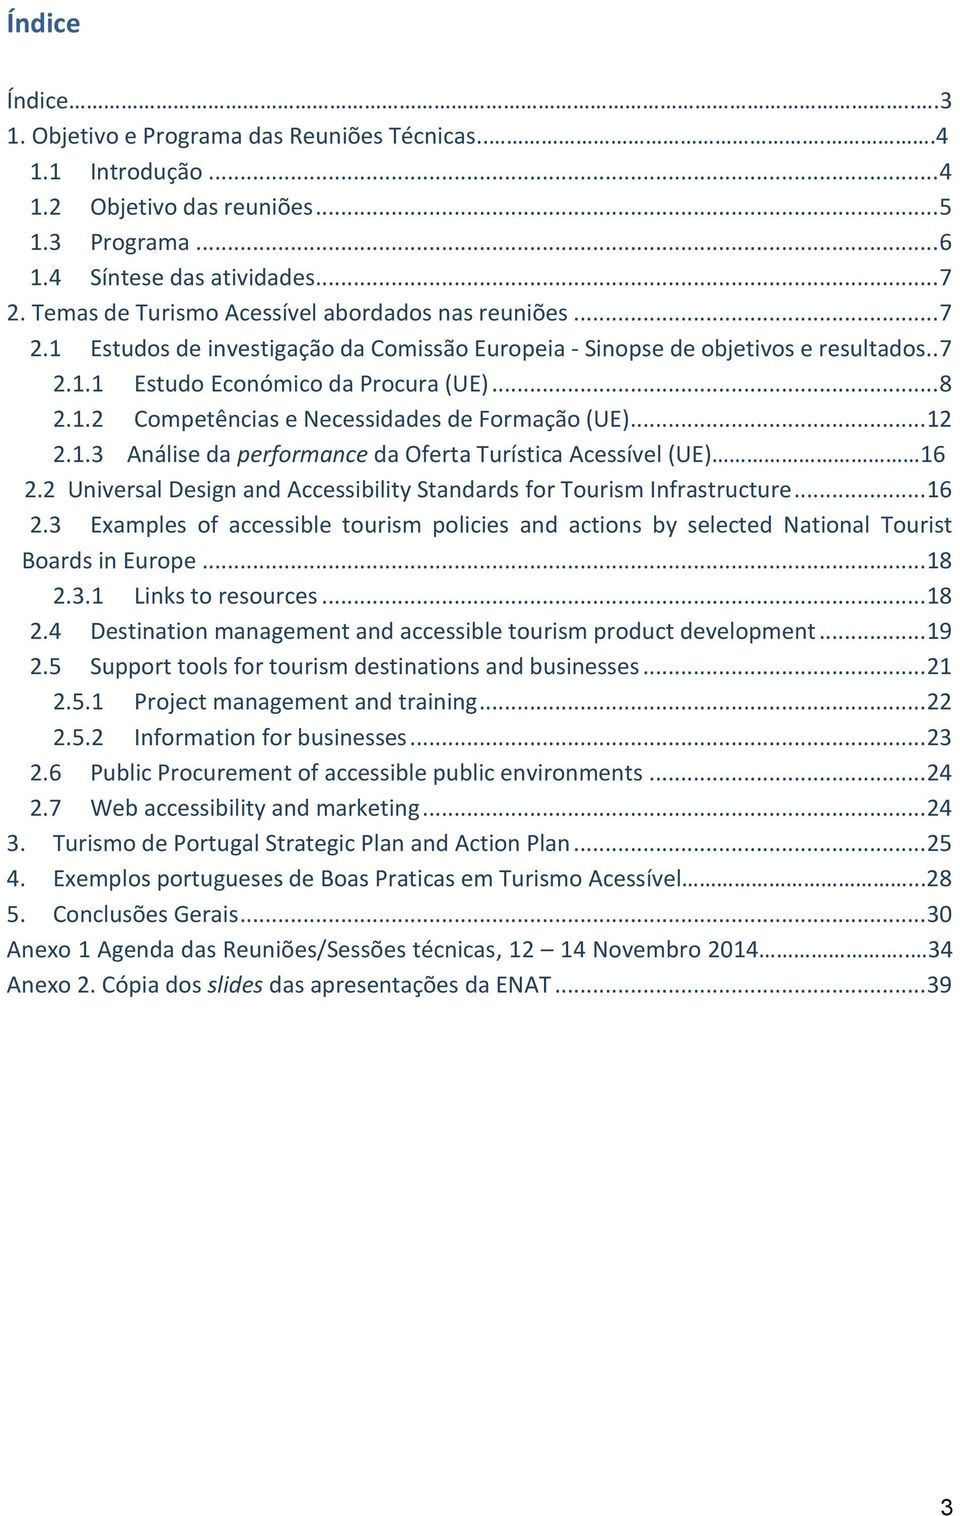 .. 12 2.1.3 Análise da performance da Oferta Turística Acessível (UE) 16 2.2 Universal Design and Accessibility Standards for Tourism Infrastructure... 16 2.3 Examples of accessible tourism policies and actions by selected National Tourist Boards in Europe.